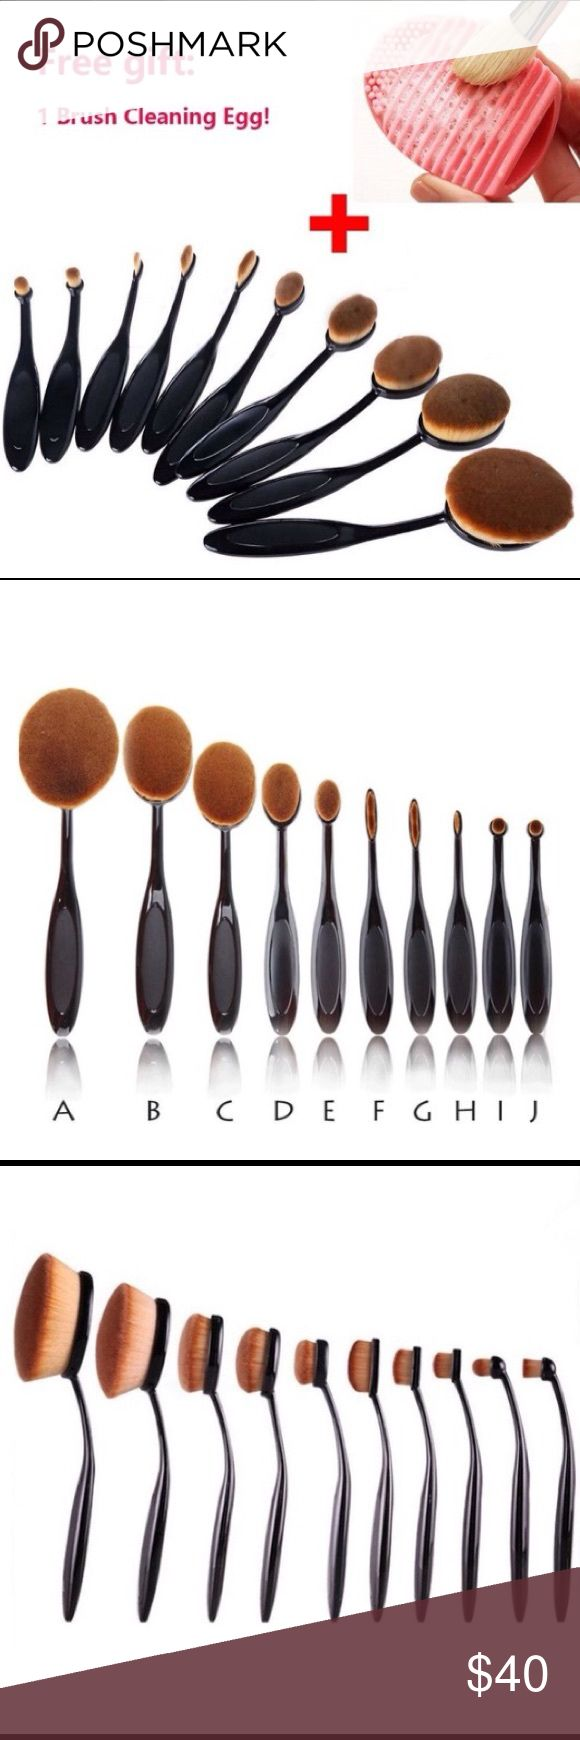 🆕 10pc soft bristle makeup brush set Toothbrush style. Matte black easy grip flexible handles. Includes a free silicone brush cleaner. Accessories